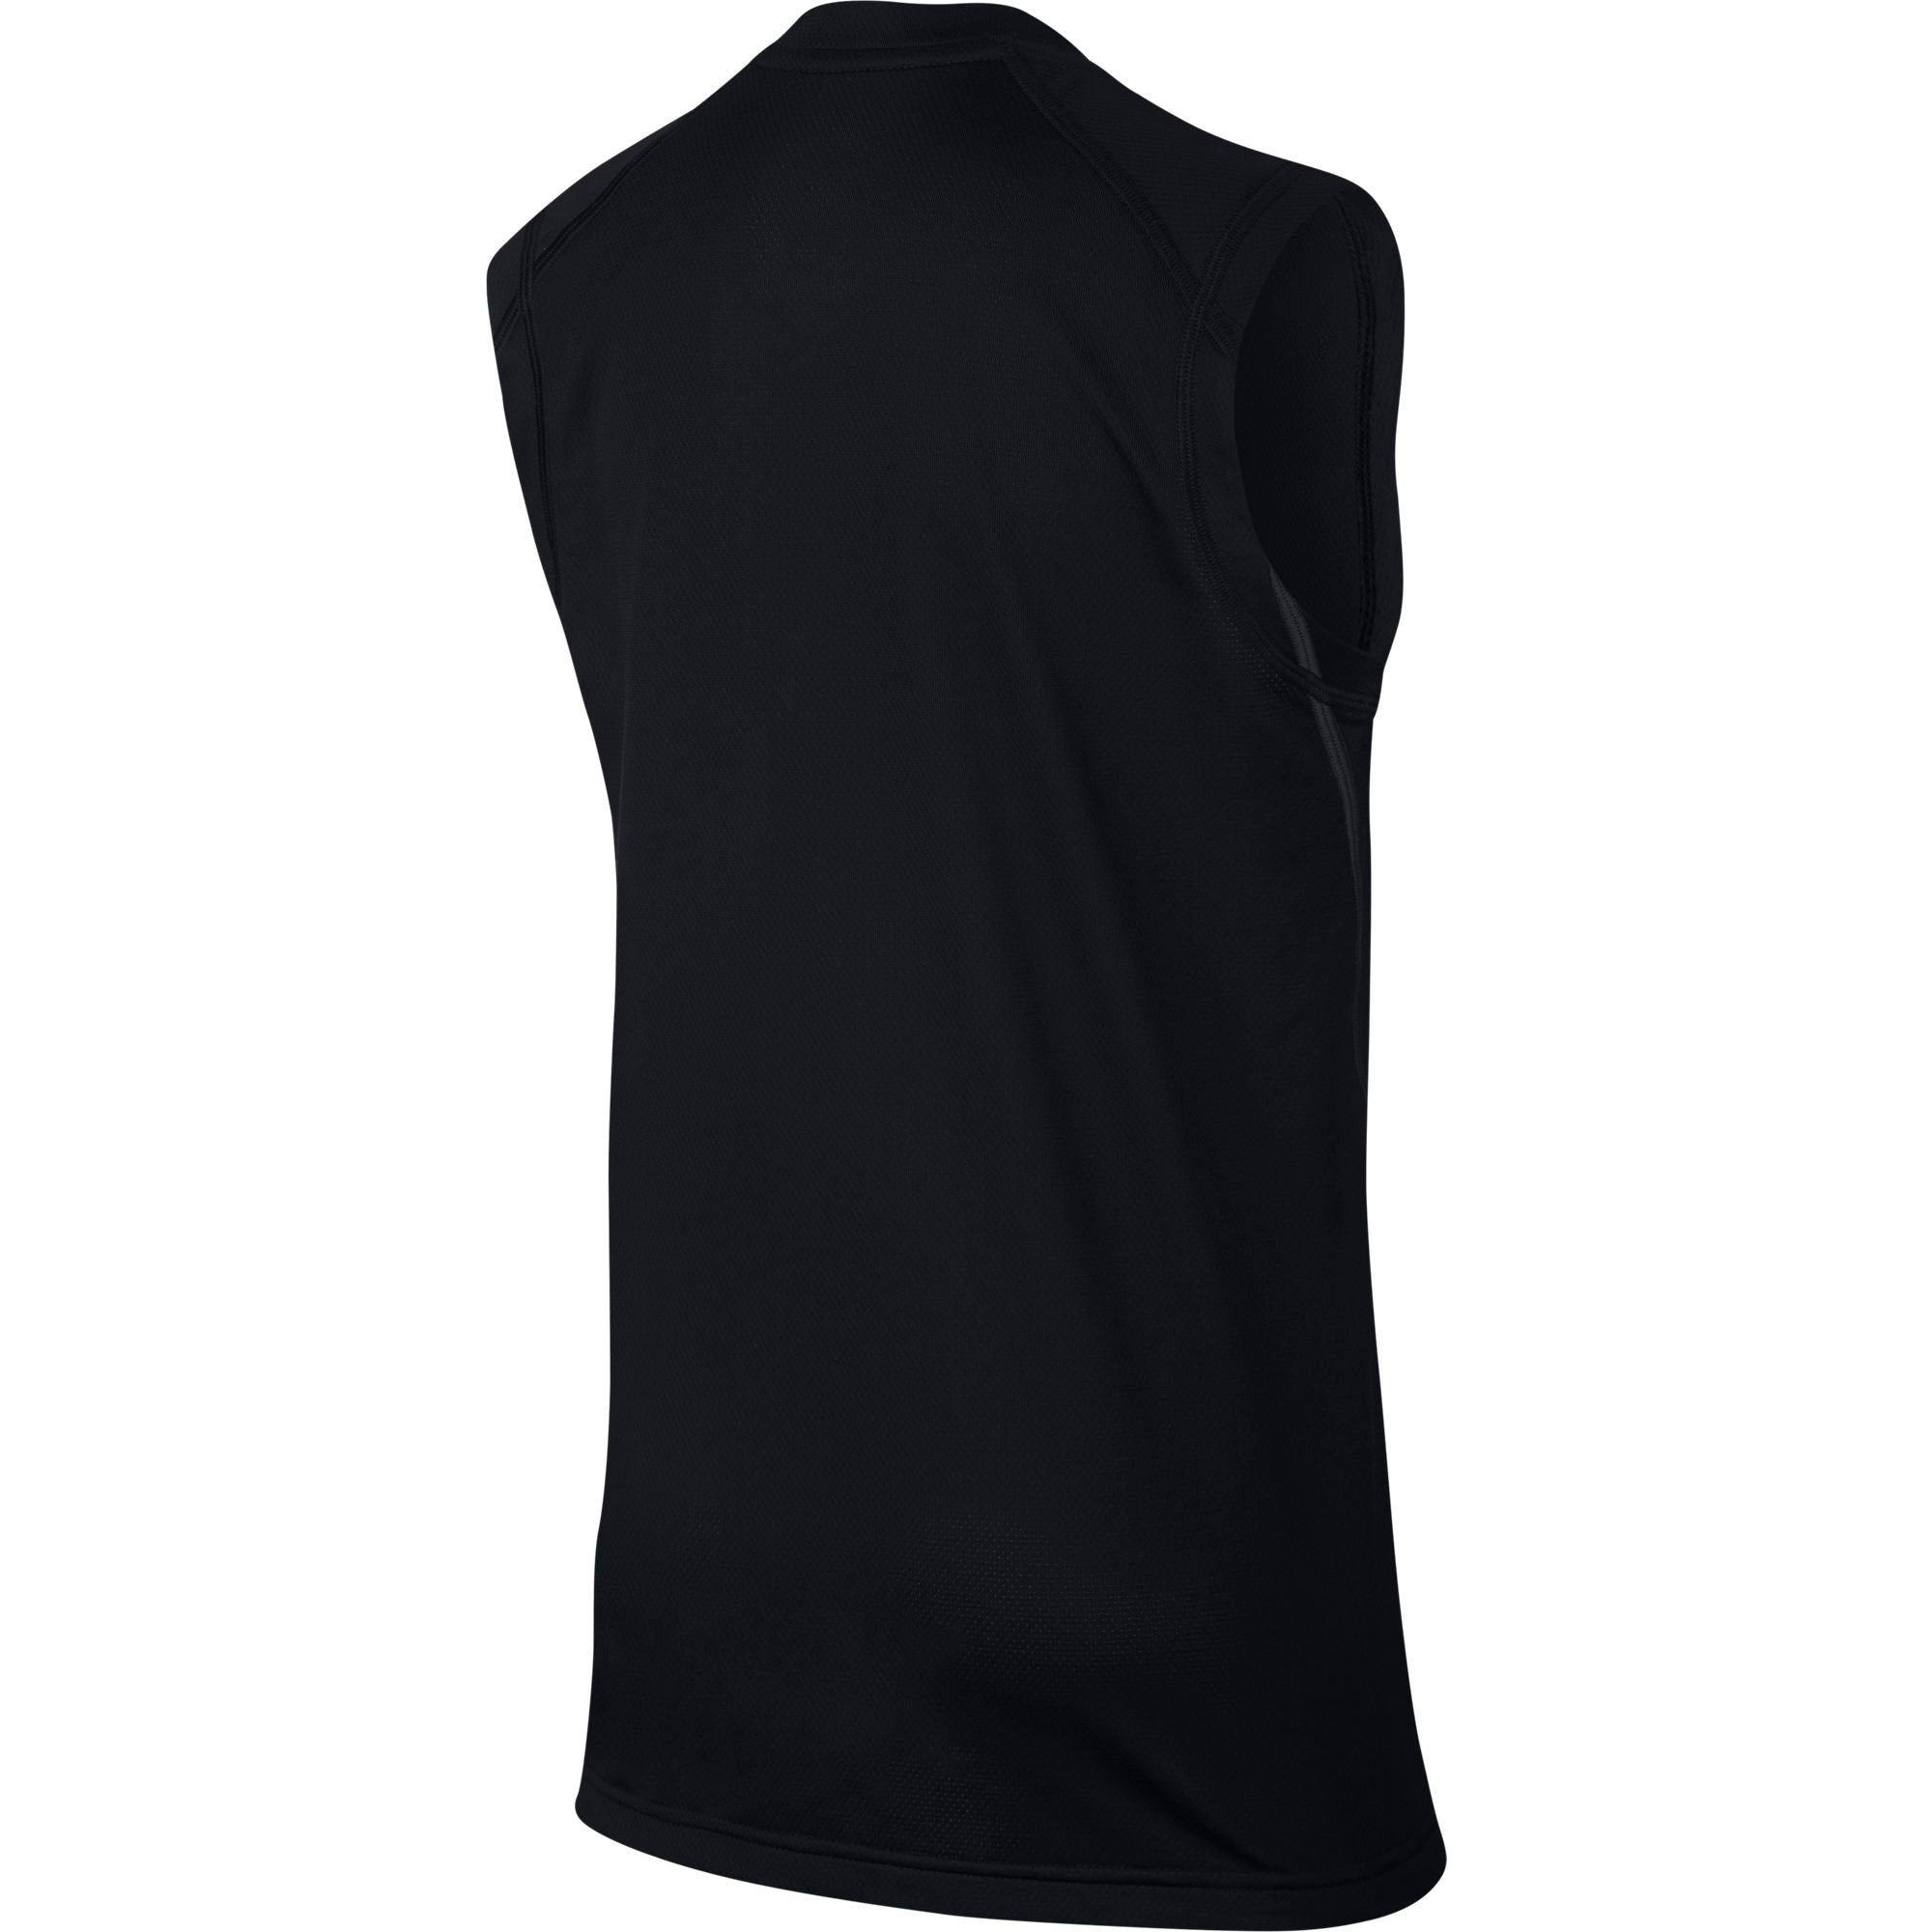 Nike Kids Training Dry Sleeveless Top - Black/Anthracite/Cool Grey